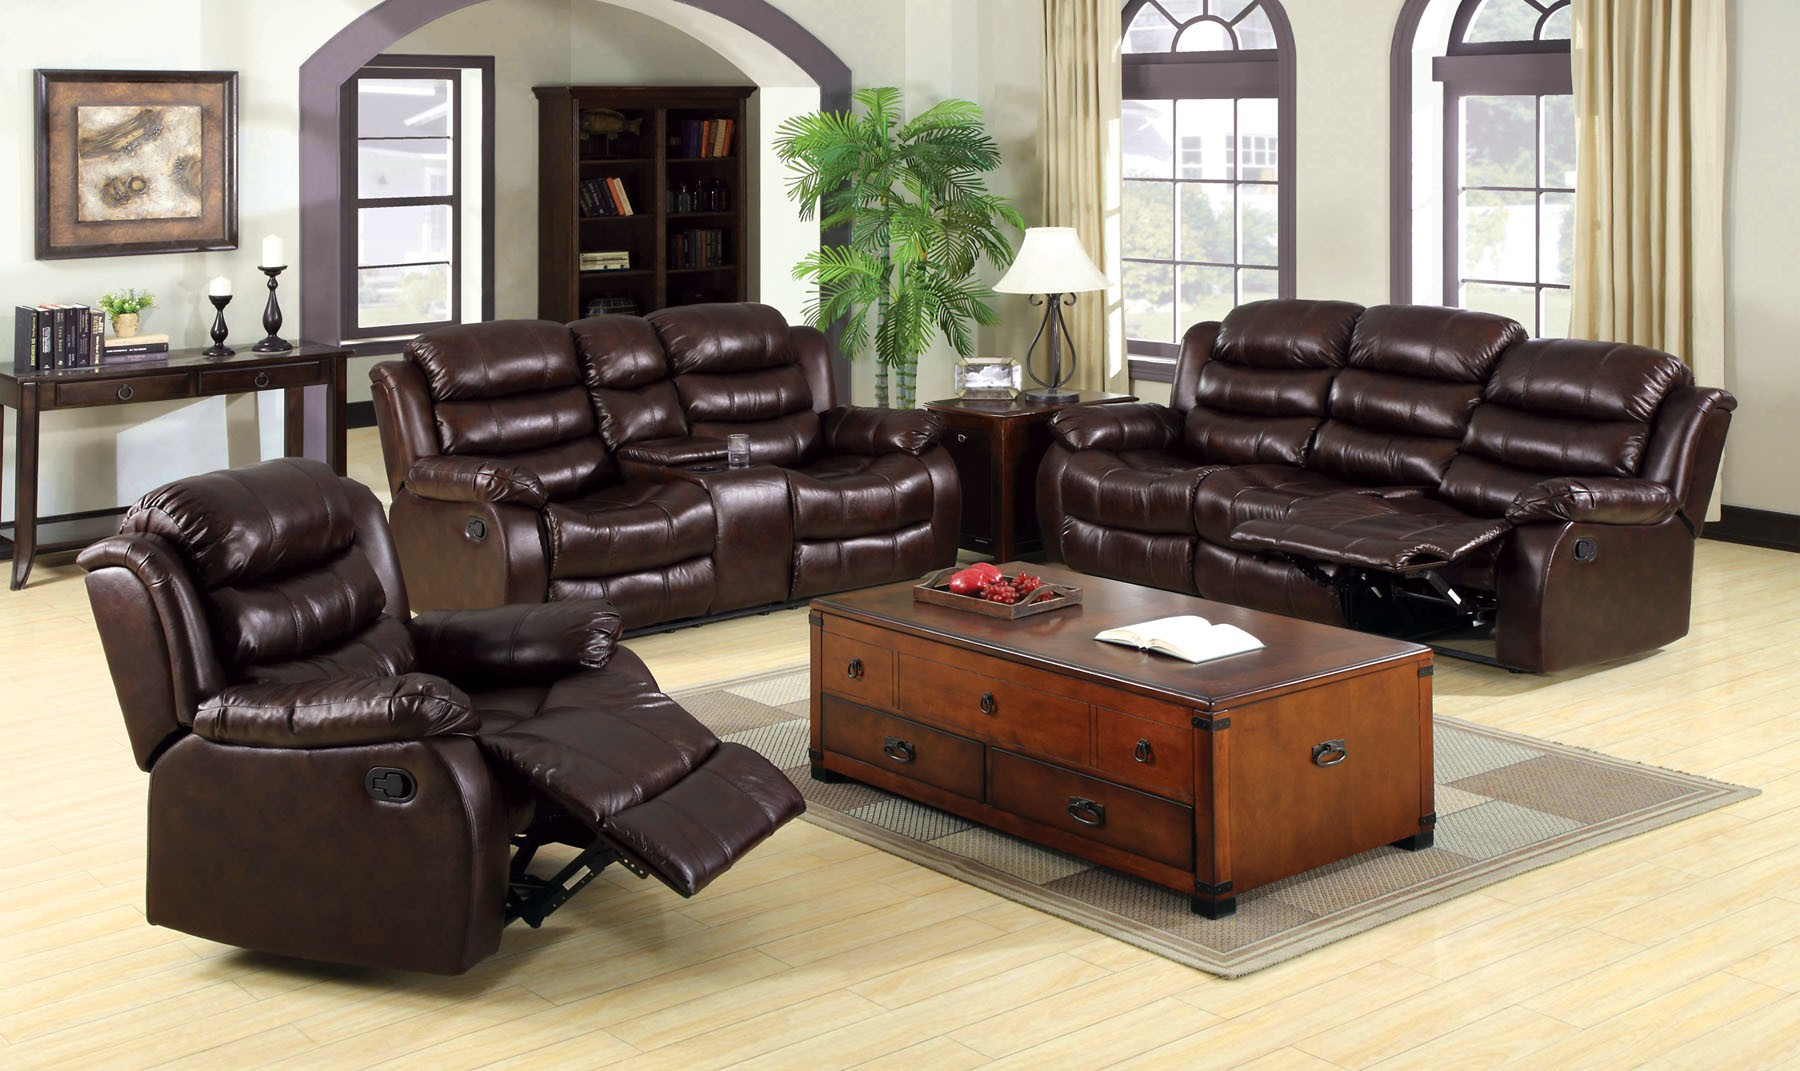 nora brown leather reclining 3 pc living room sofa set chocolate sectional bonded loveseat with center